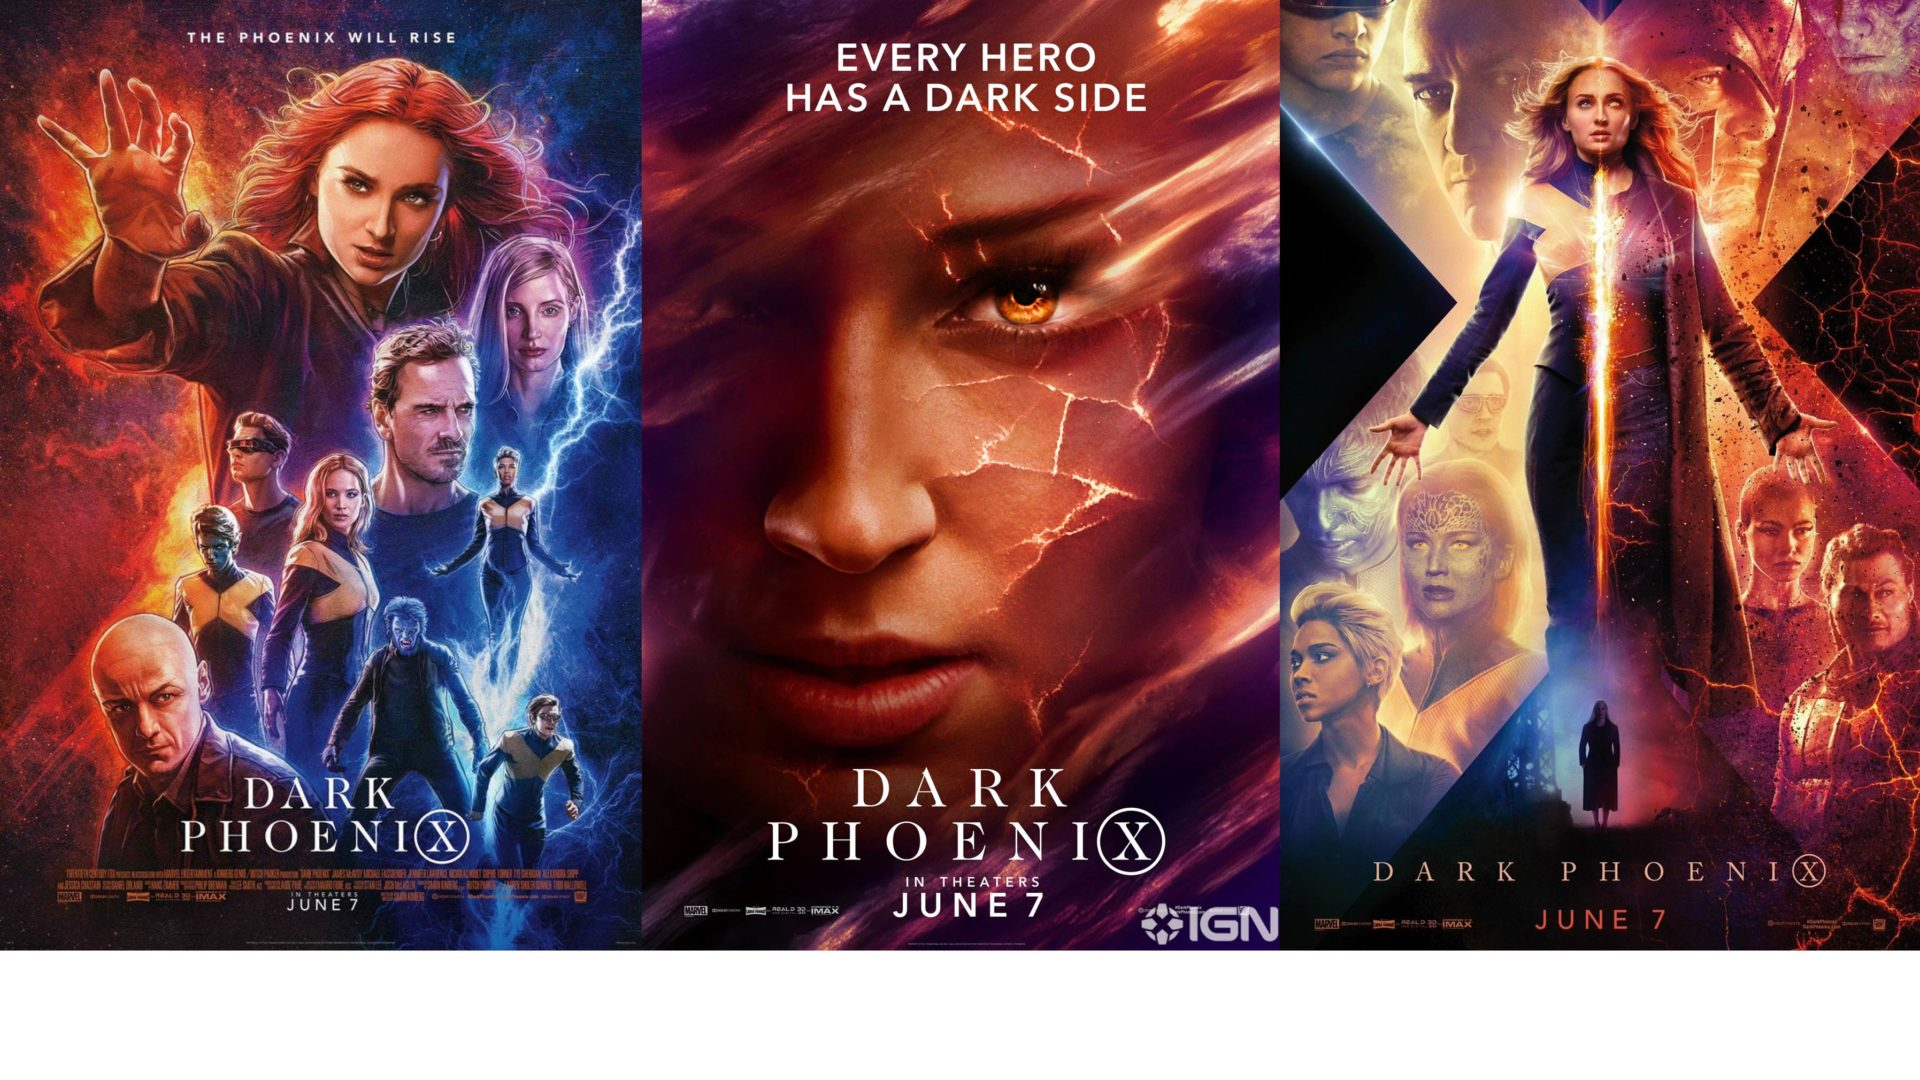 X Men S Dark Phoenix What To Know Before You Watch The Movie